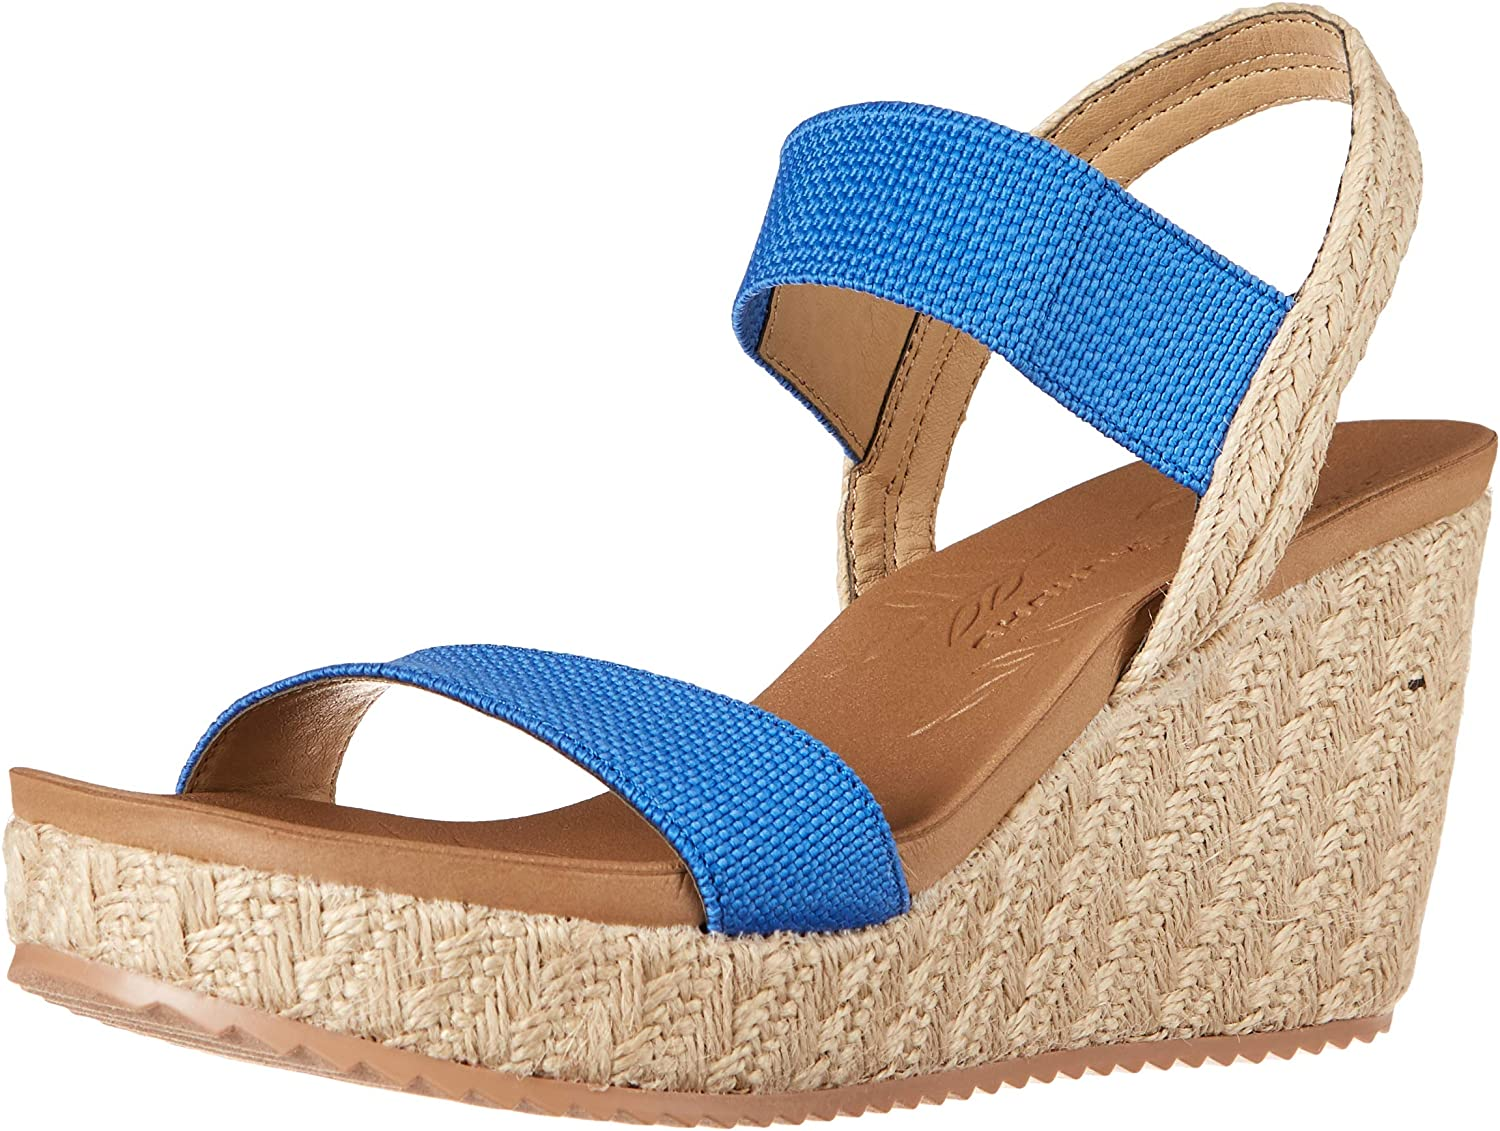 Fixed price for sale CL by Chinese Laundry Wedge Sandal quality assurance Kaylin Women's